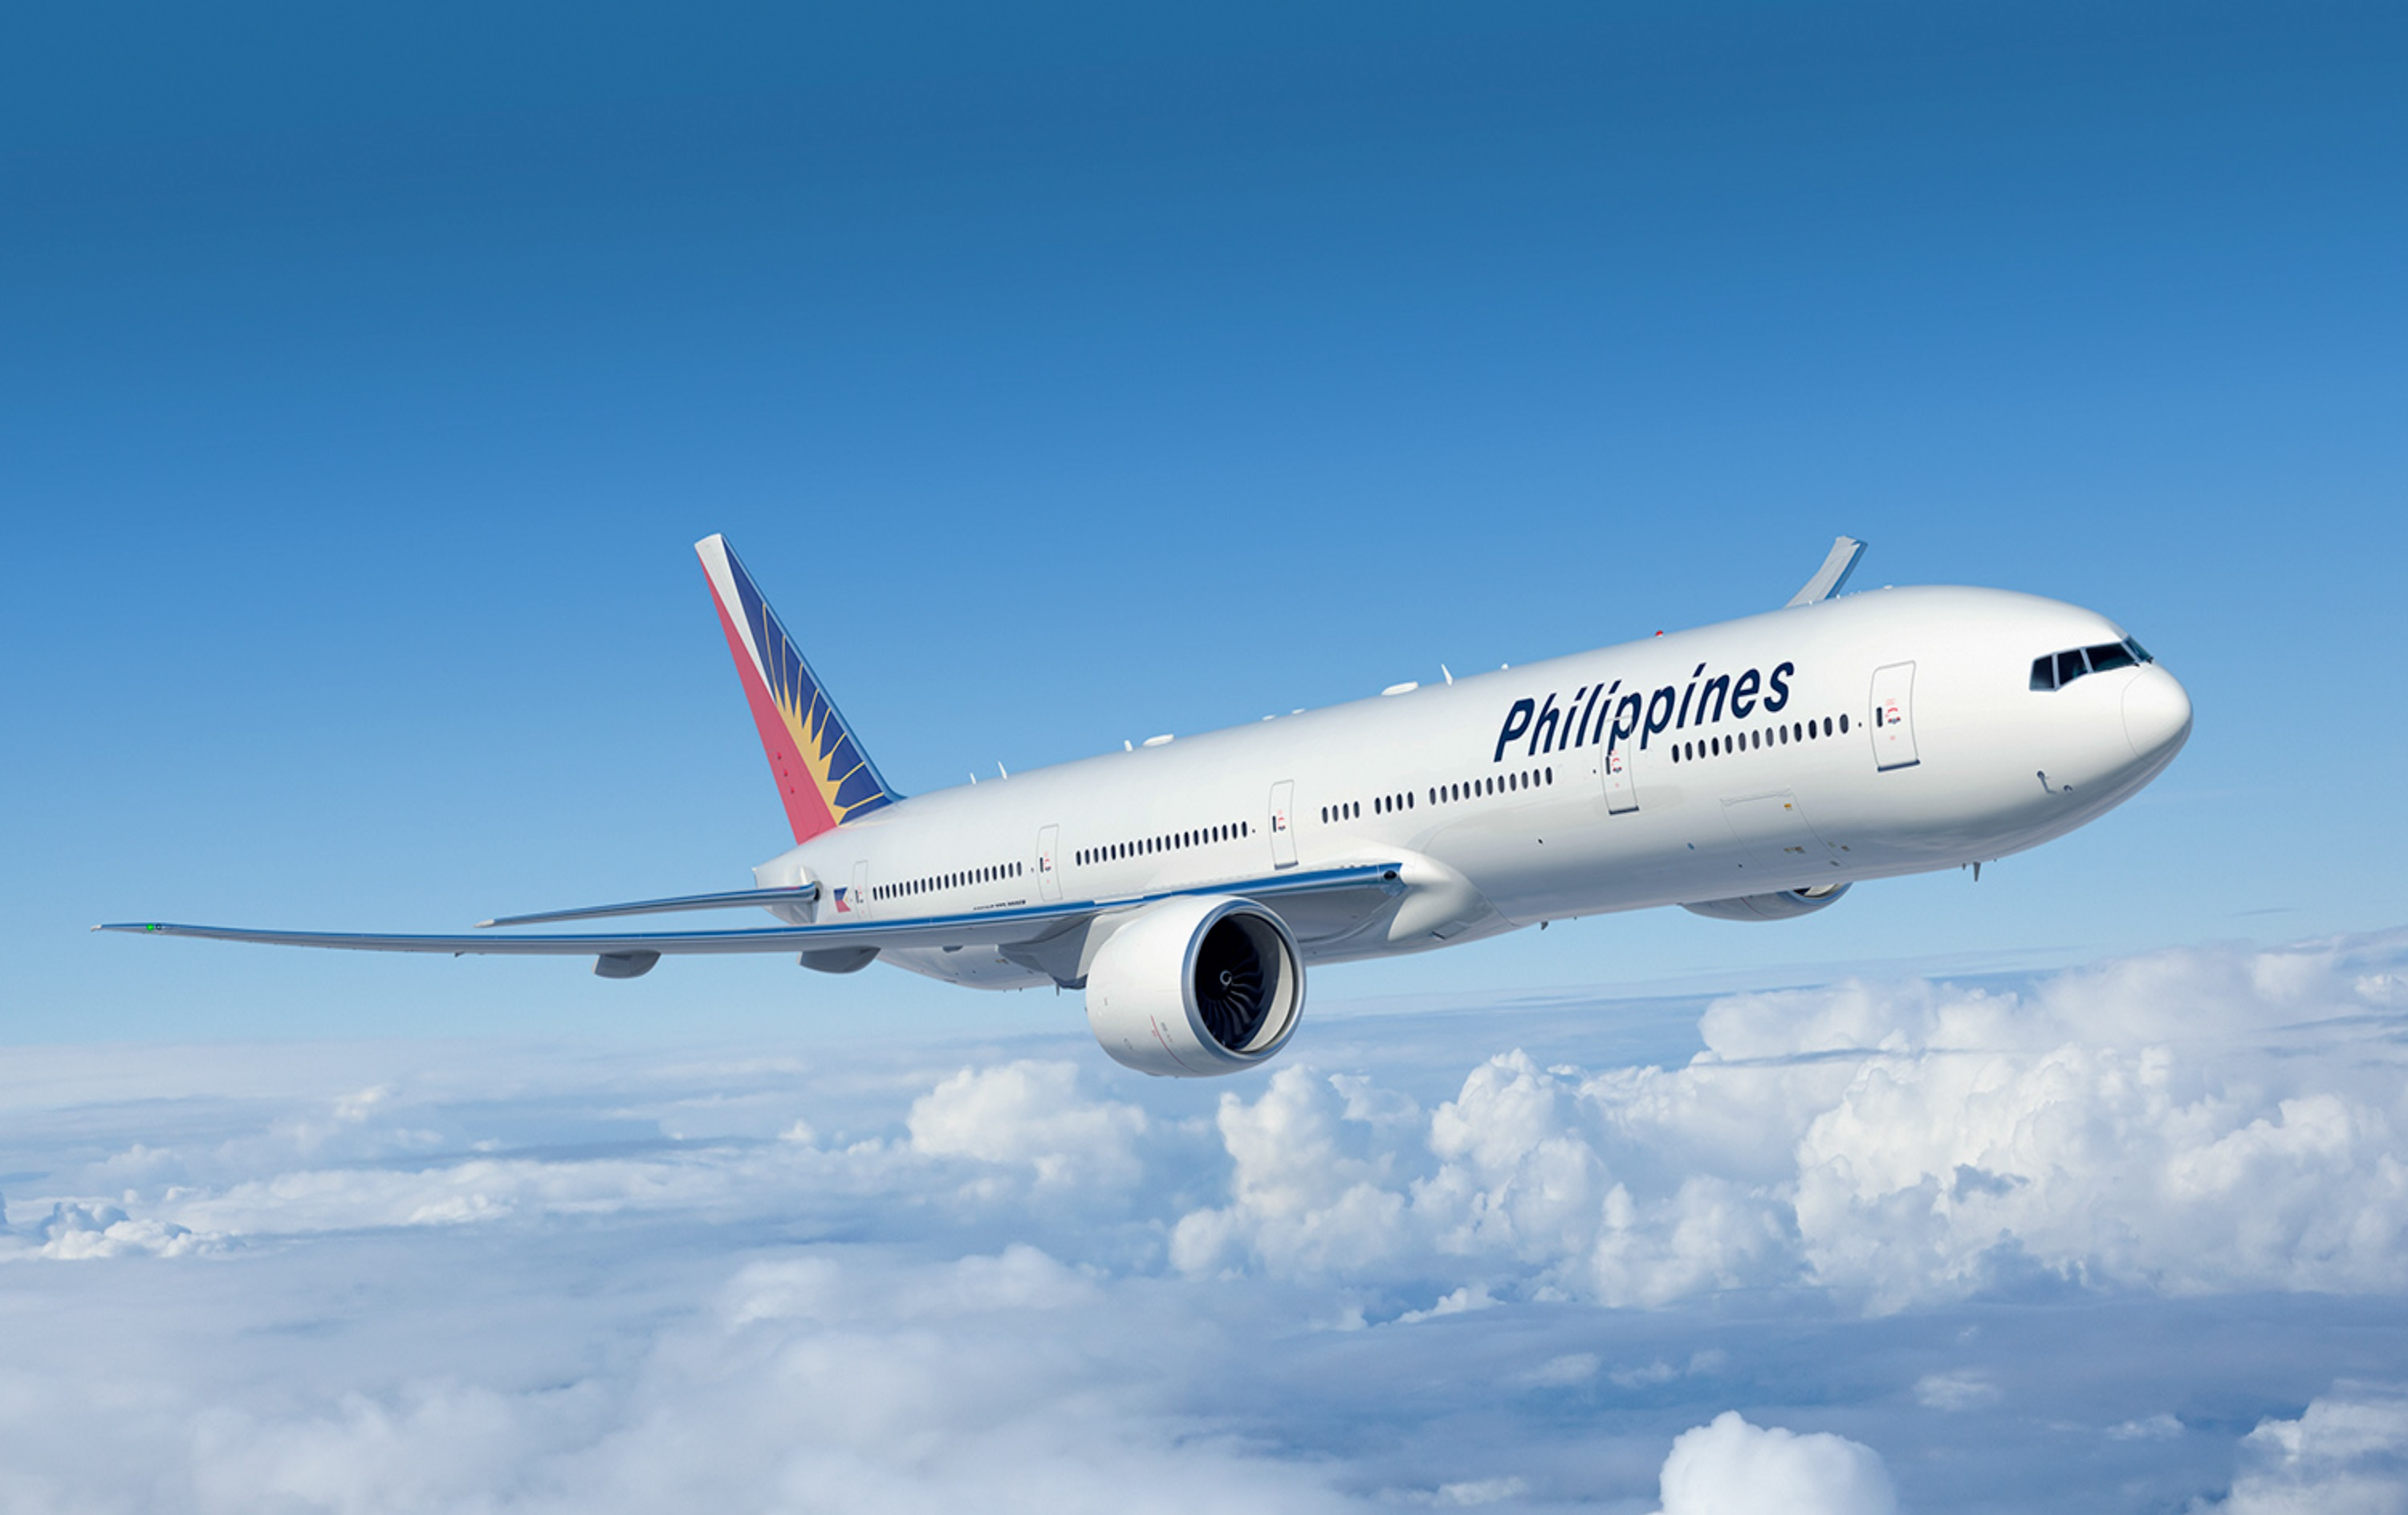 Philippine Airlines flight from Vancouver to Manila